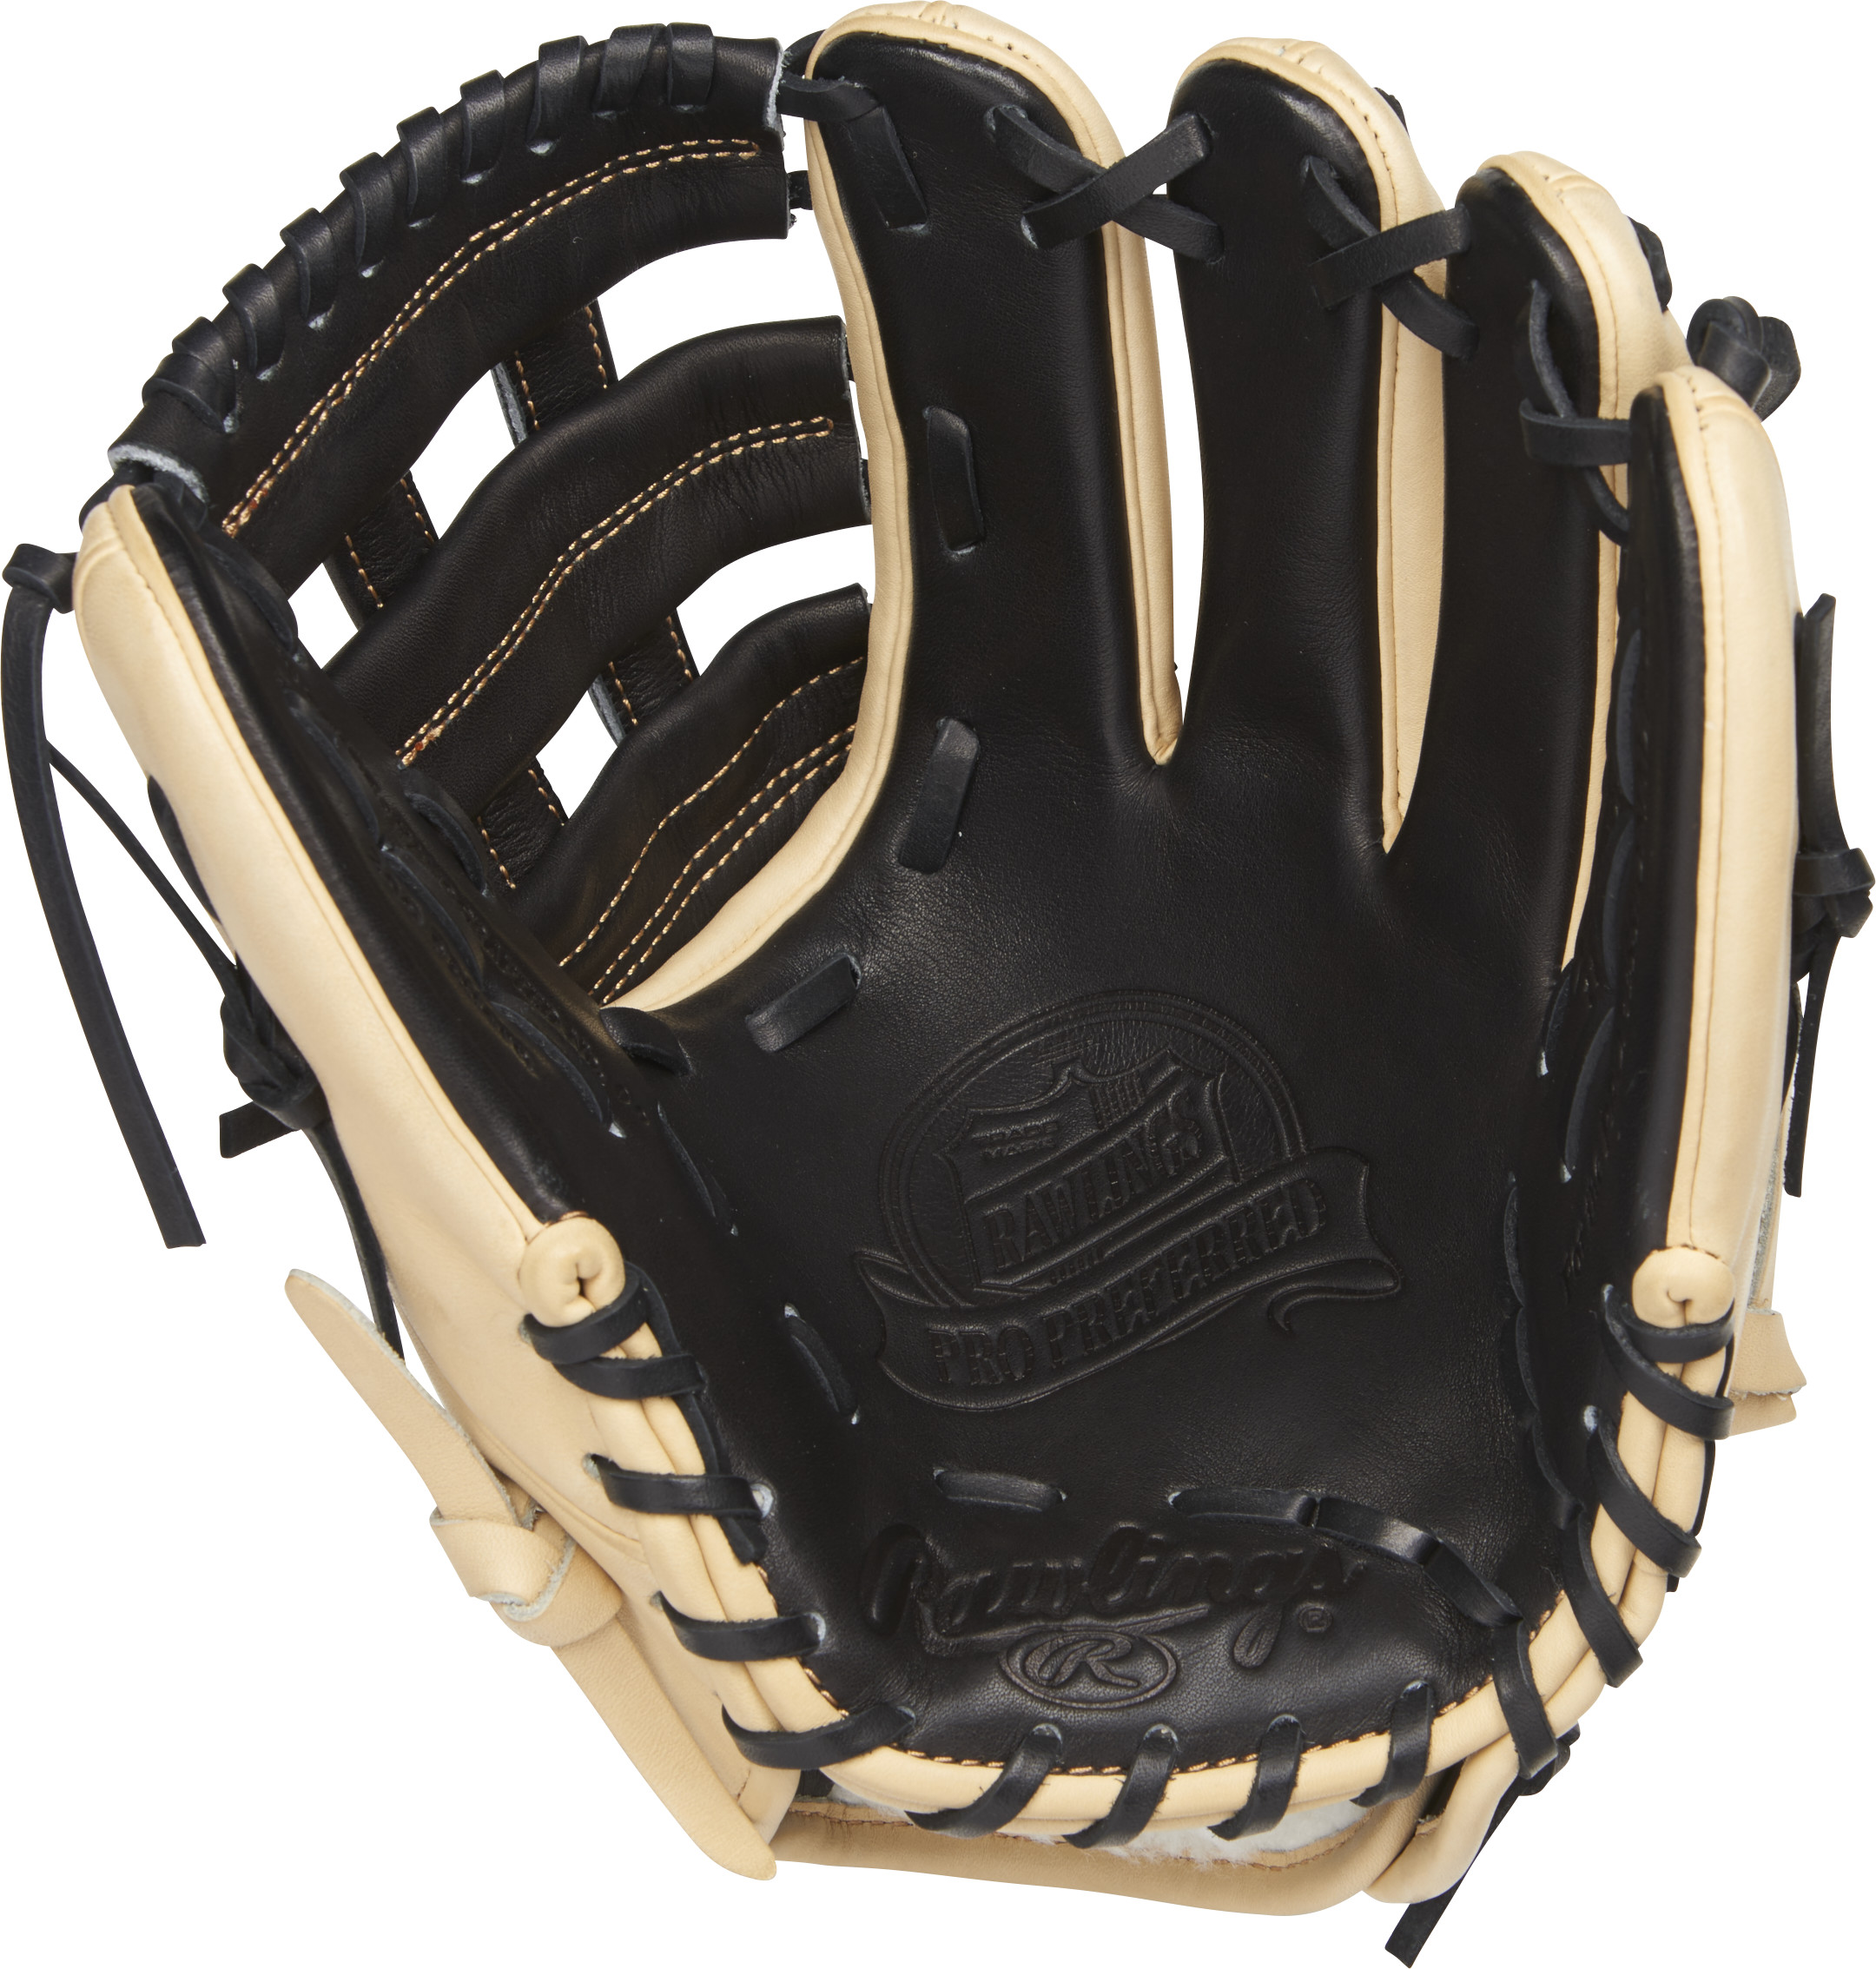 http://www.bestbatdeals.com/images/gloves/rawlings/PROS204-6BC-1.jpg